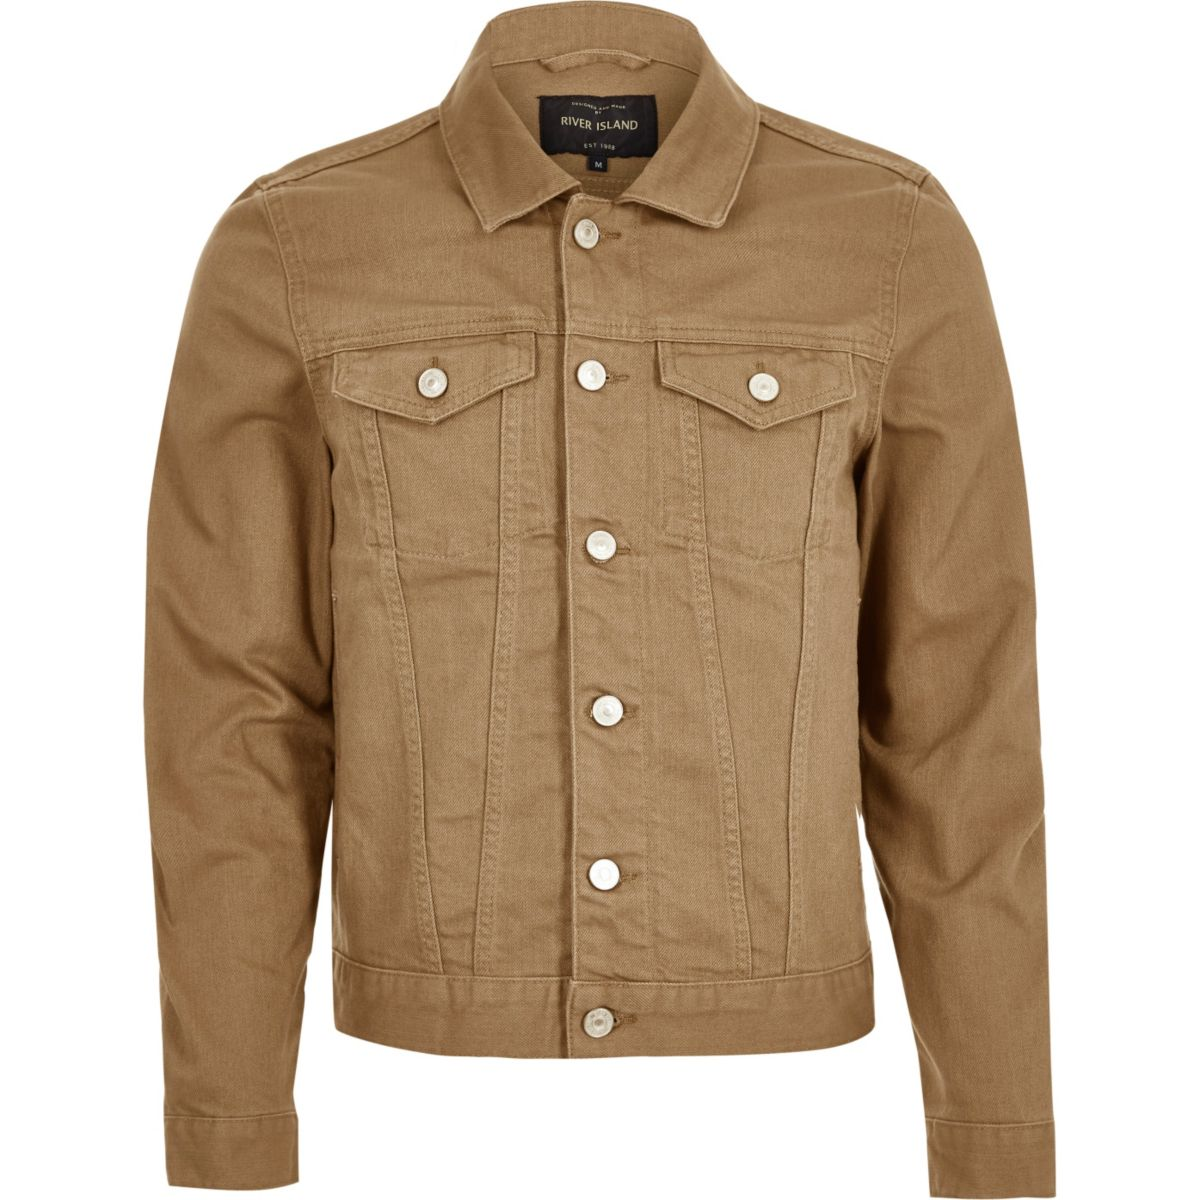 Light brown denim jacket - Coats & Jackets - Sale - men